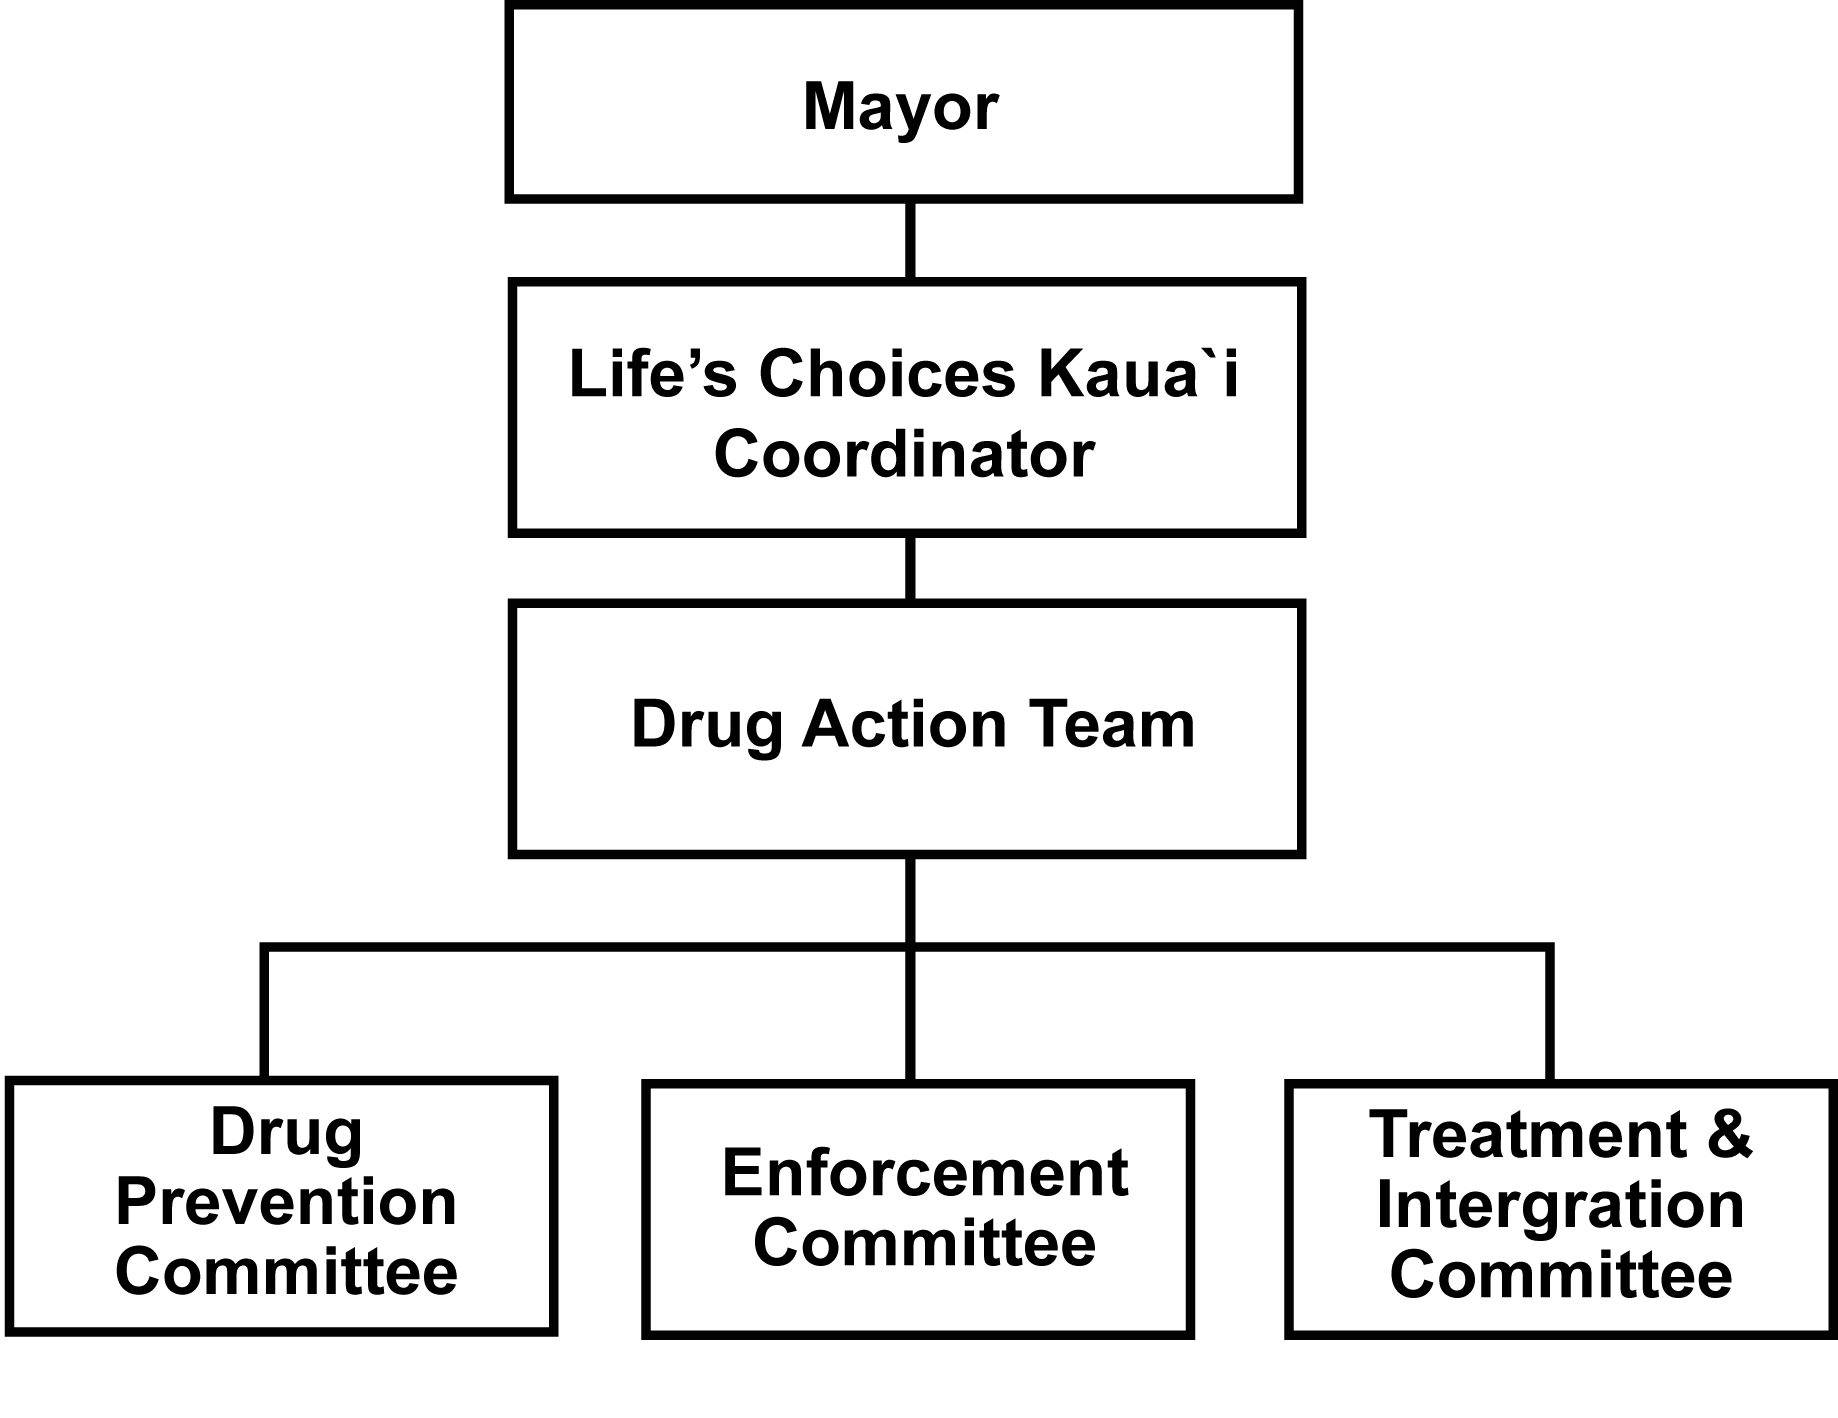 Mayor's Advisory Committee organizational tree